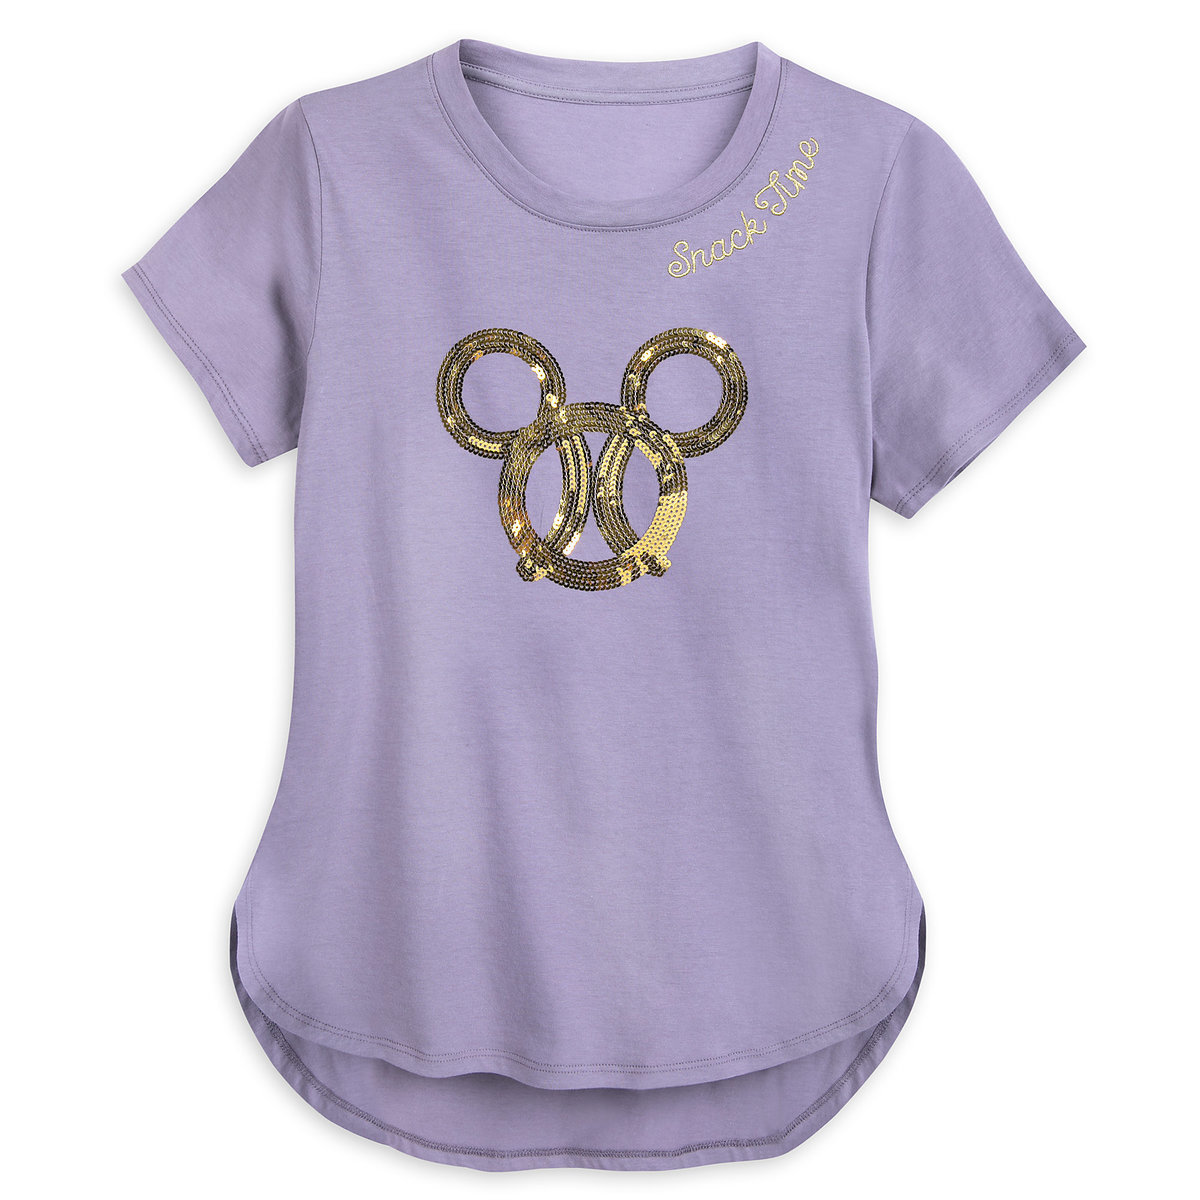 cf45d8a05 Product Image of Mickey Mouse Sequined Pretzel Fashion T-Shirt for Women # 1